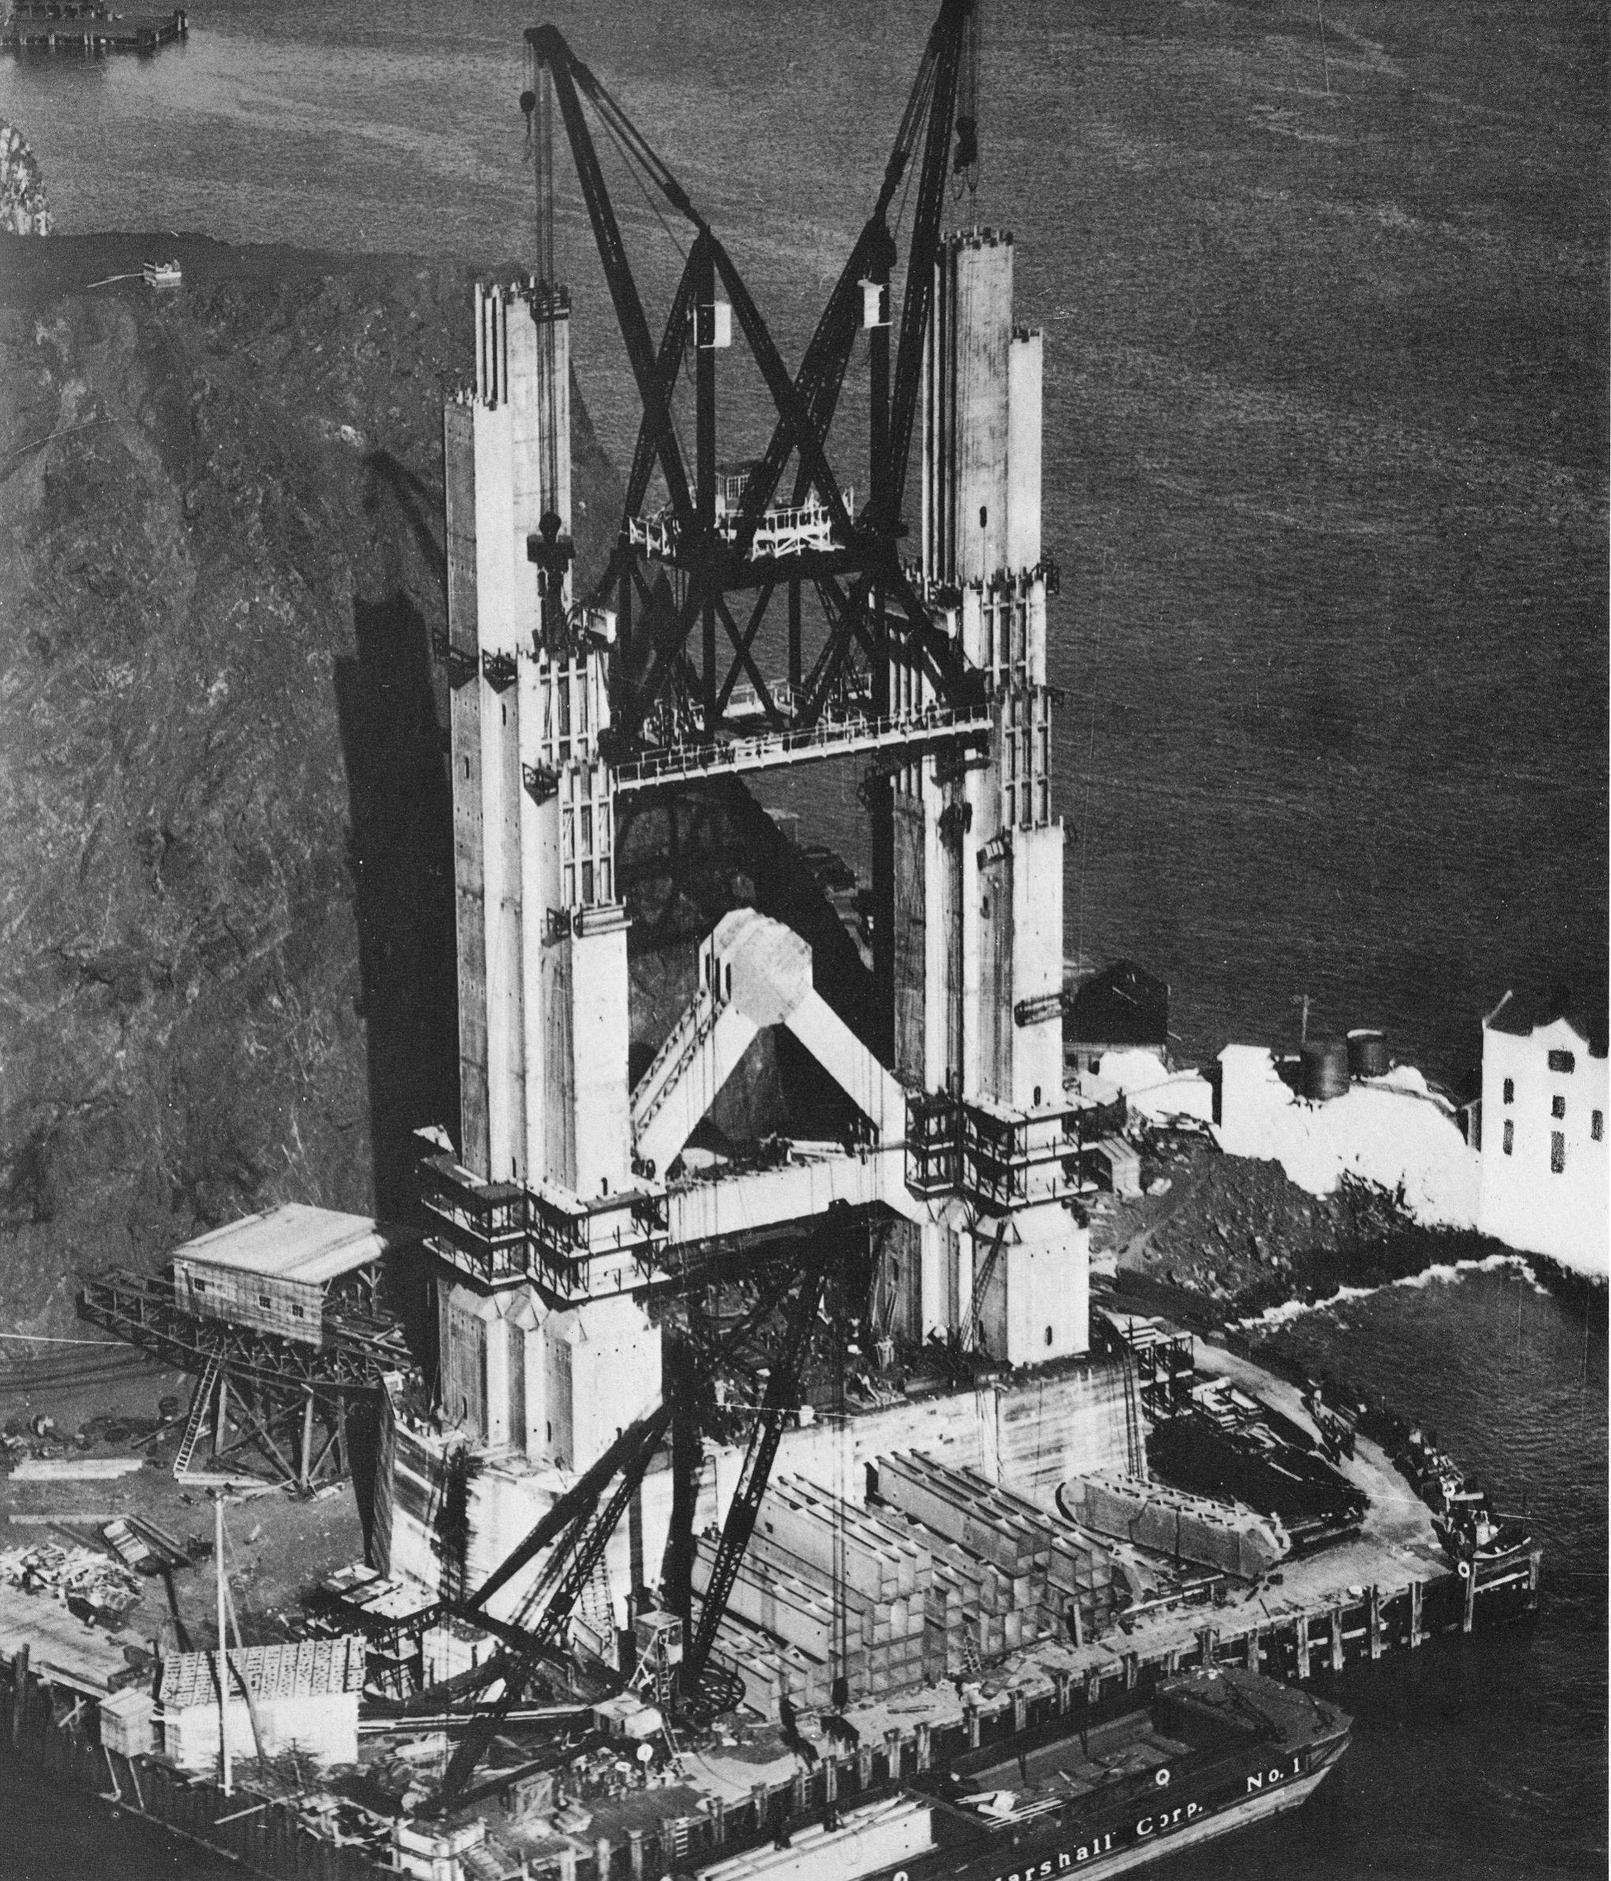 Golden Gate Bridge - Construction